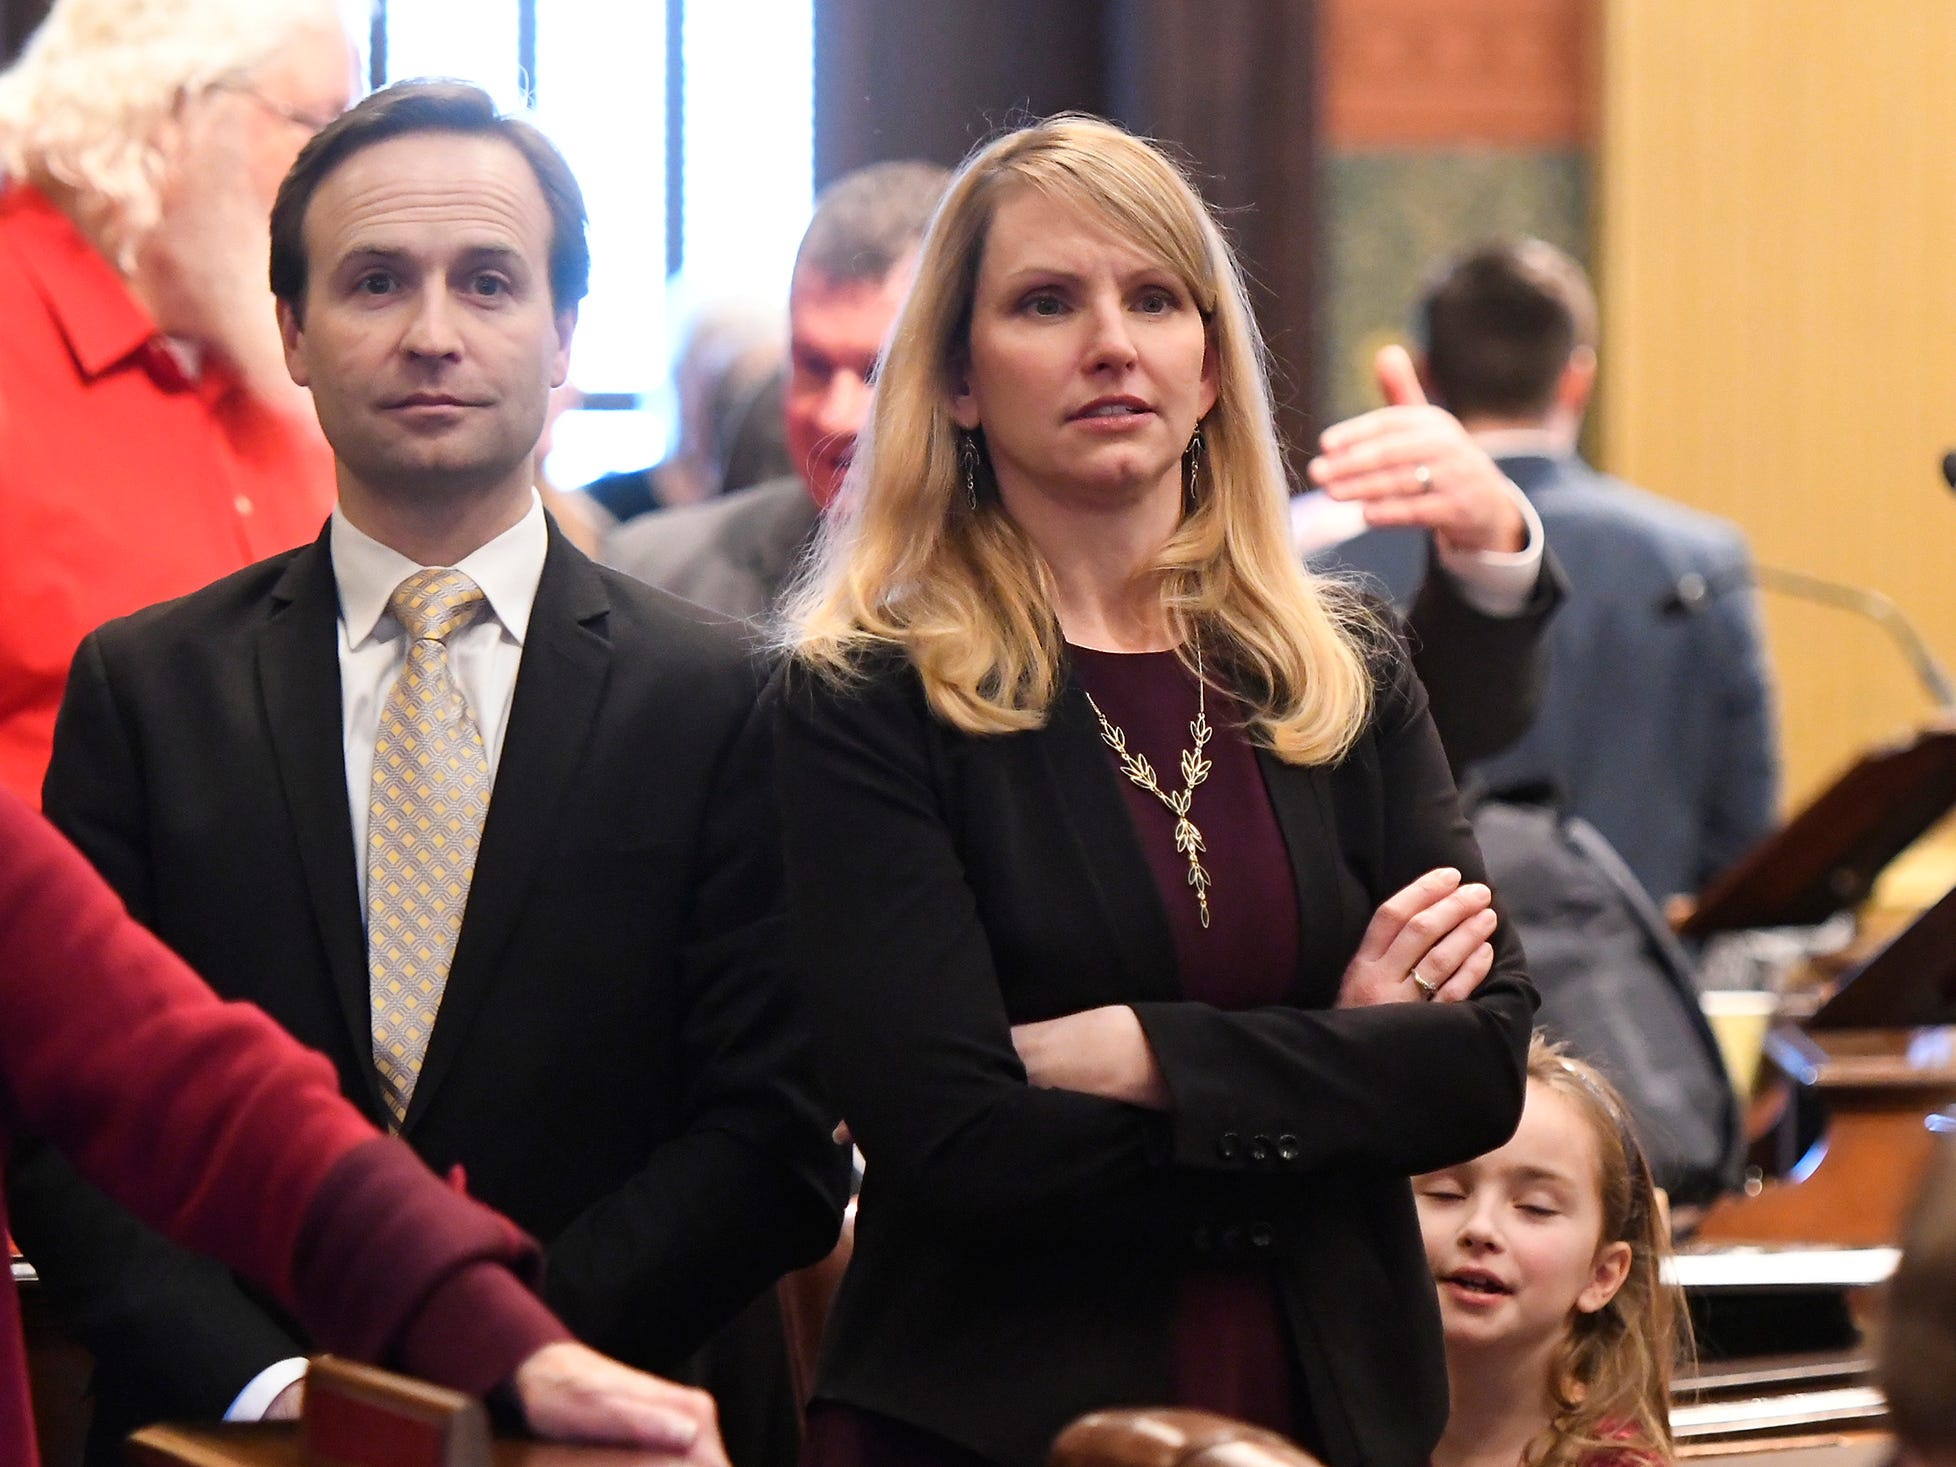 Rep. Julie Calley, R-District 87, and husband (and former Lt. Gov.) Brian Calley, left, wait for Representatives to get to their new seats after swearing in and opening ceremonies for the 100th Legislature Wednesday in Lansing.